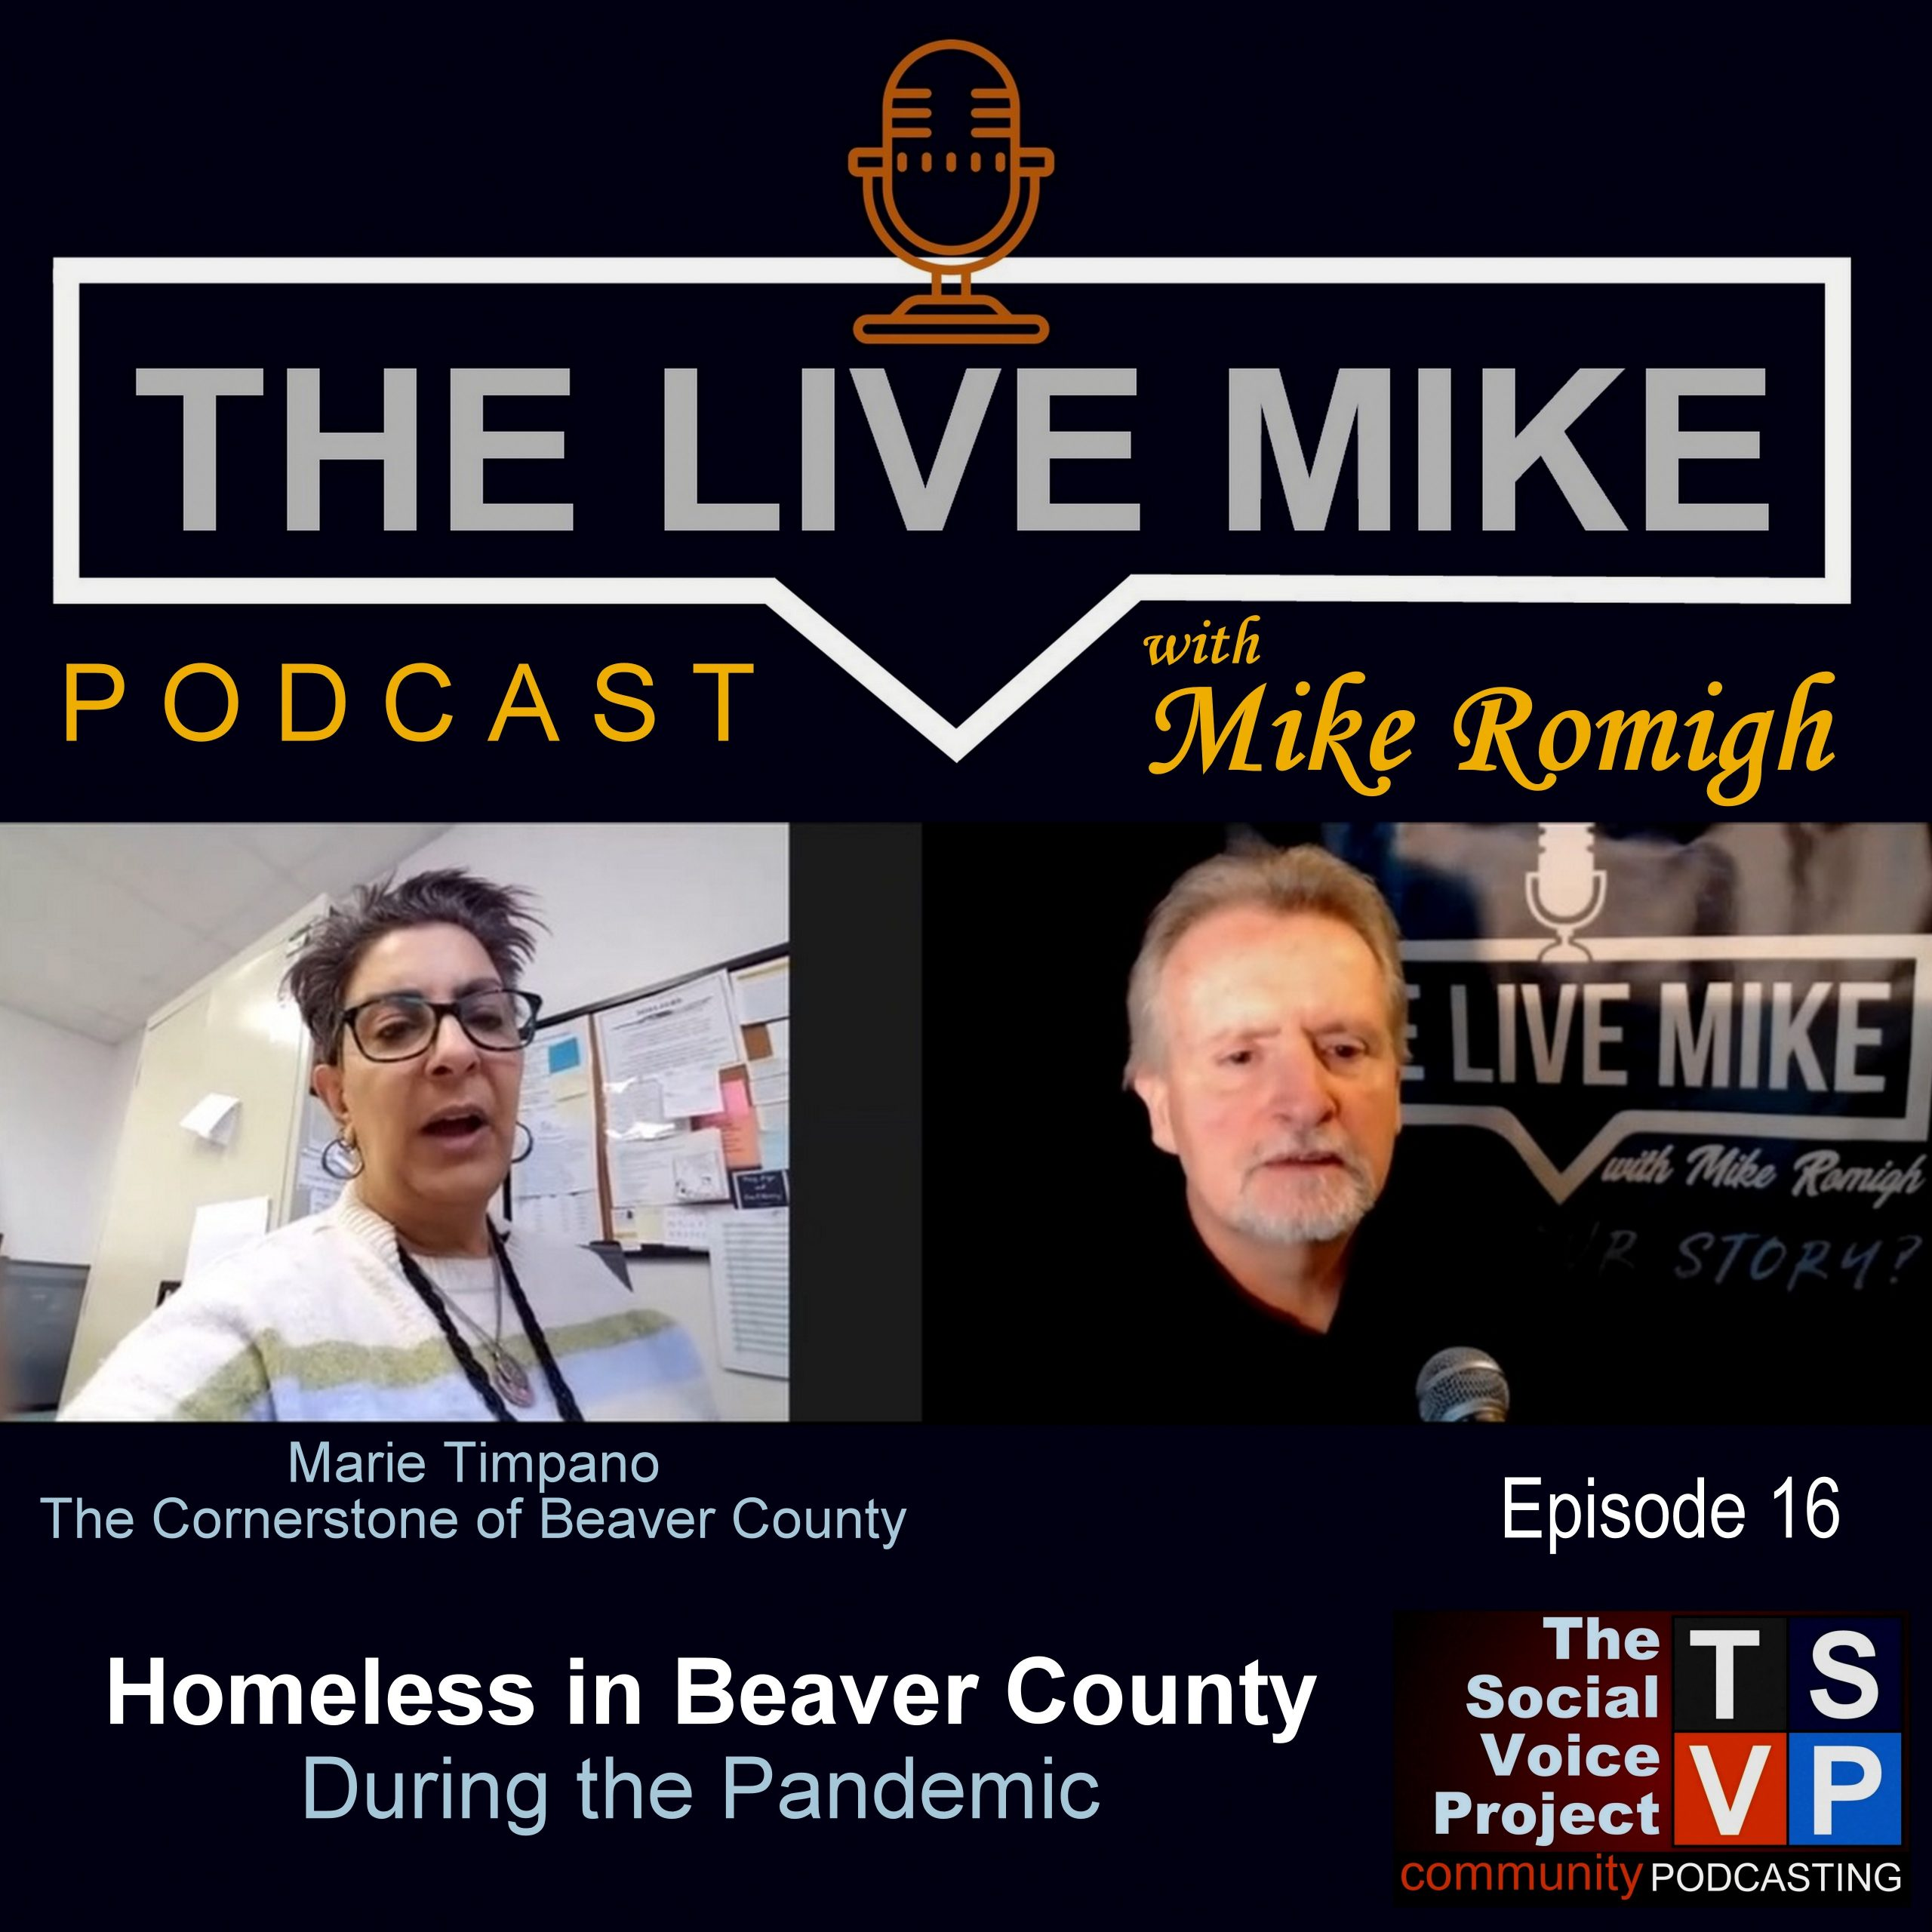 The Live Mike Podcast (Ep16): Marie Timpano